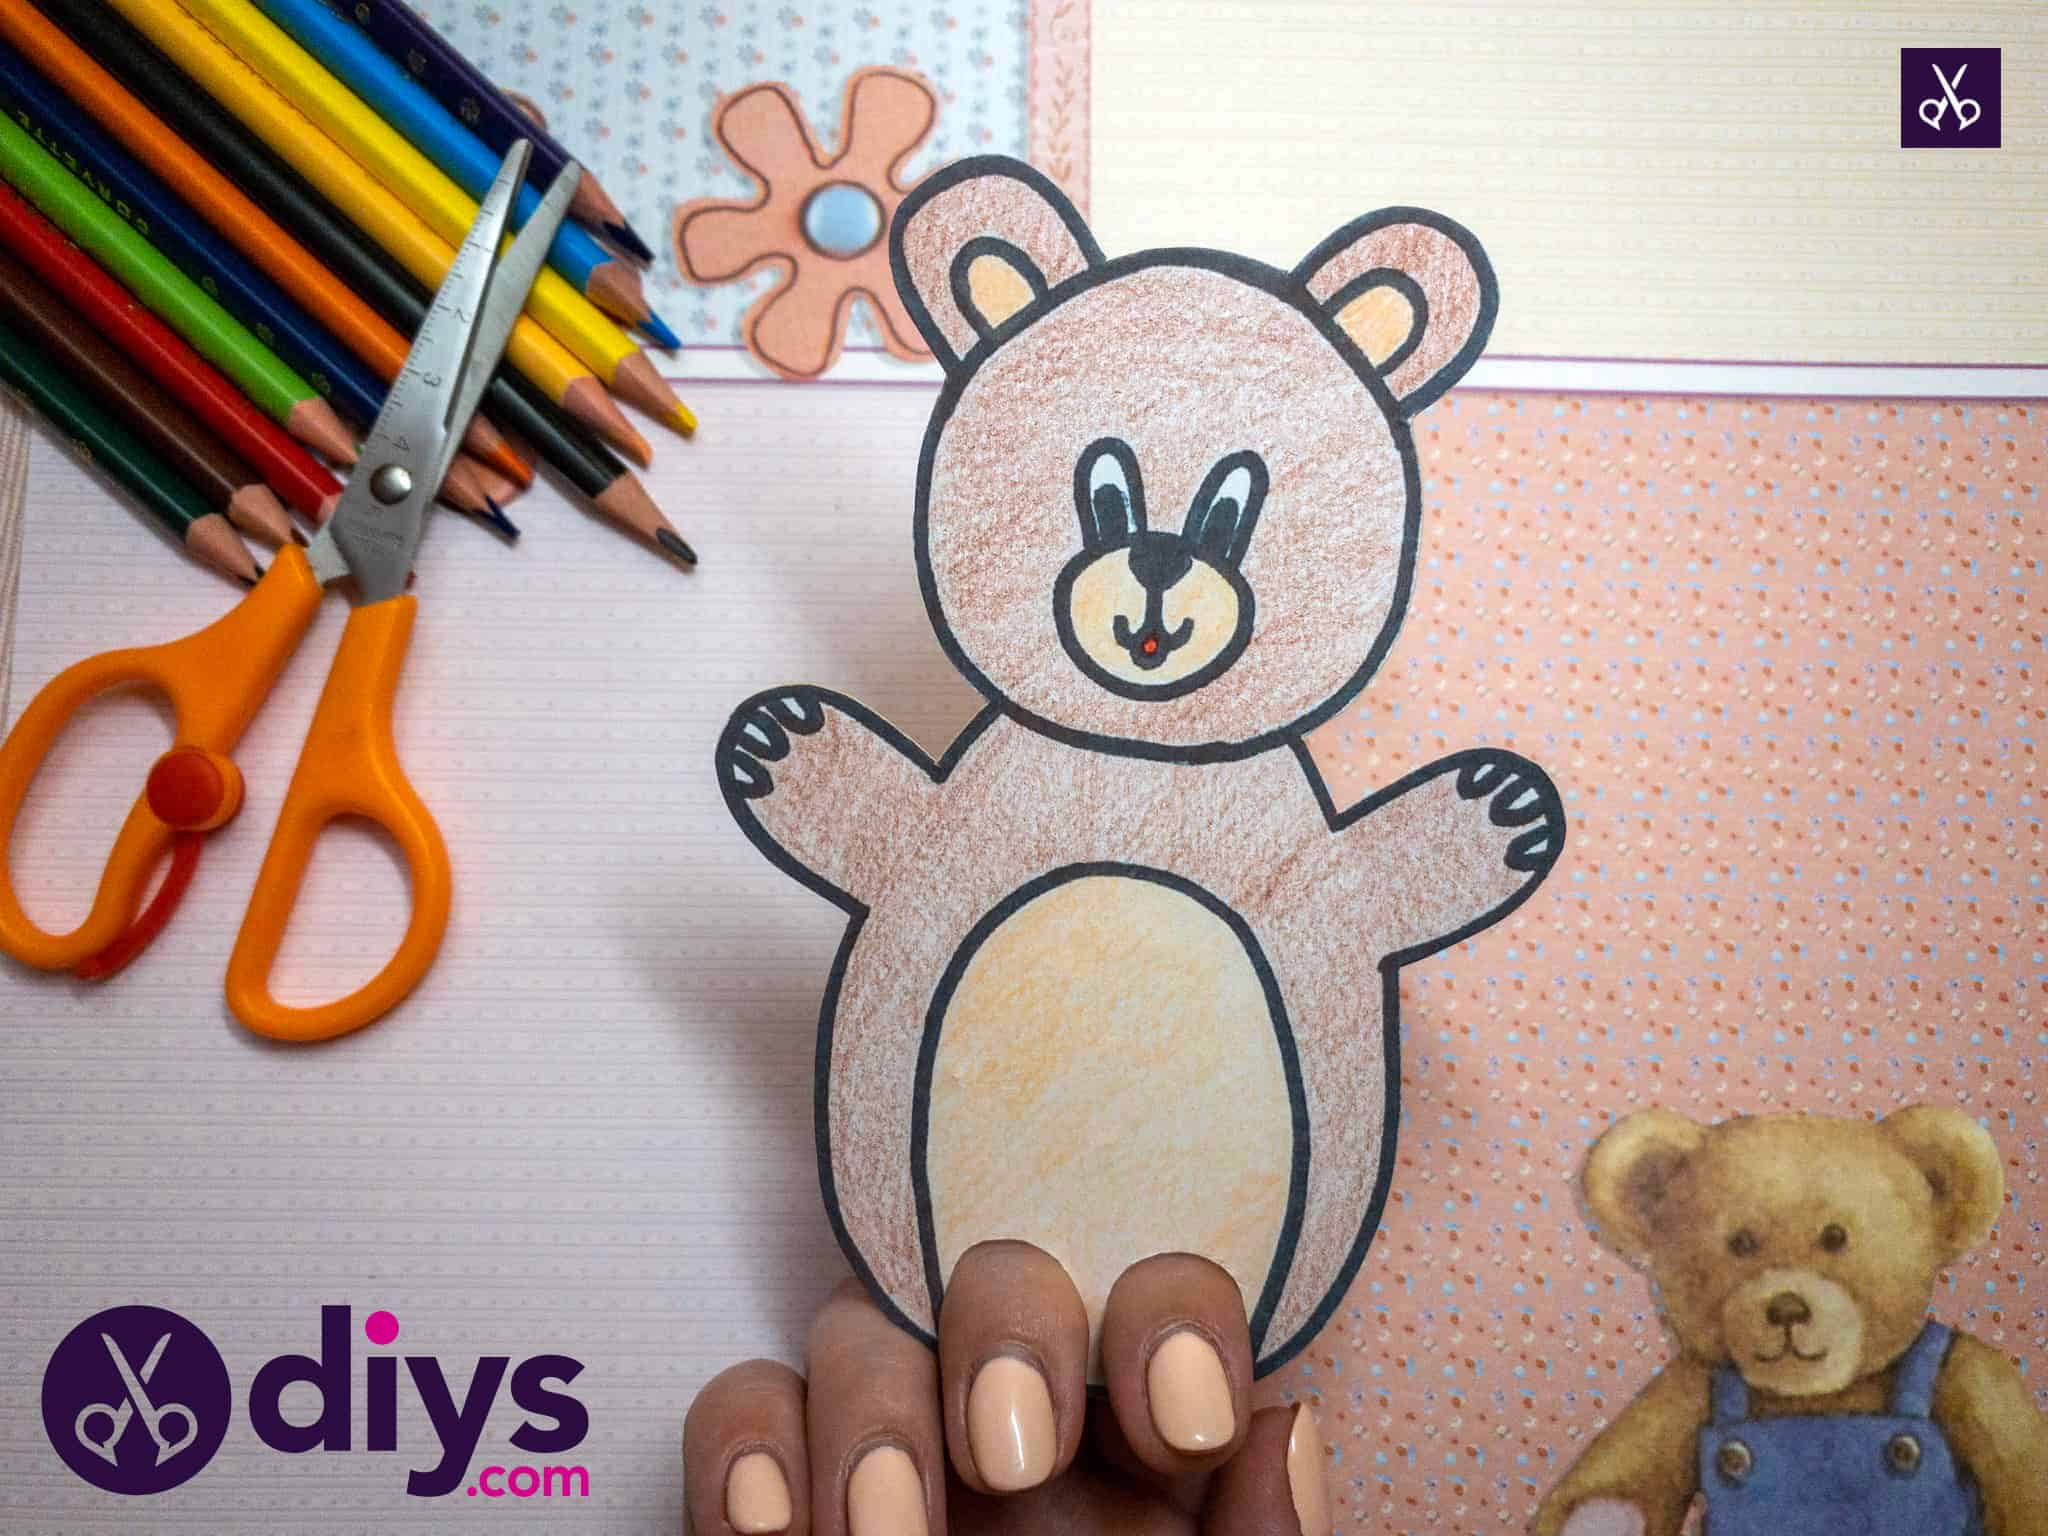 How to make an adorable bear finger puppet for kids